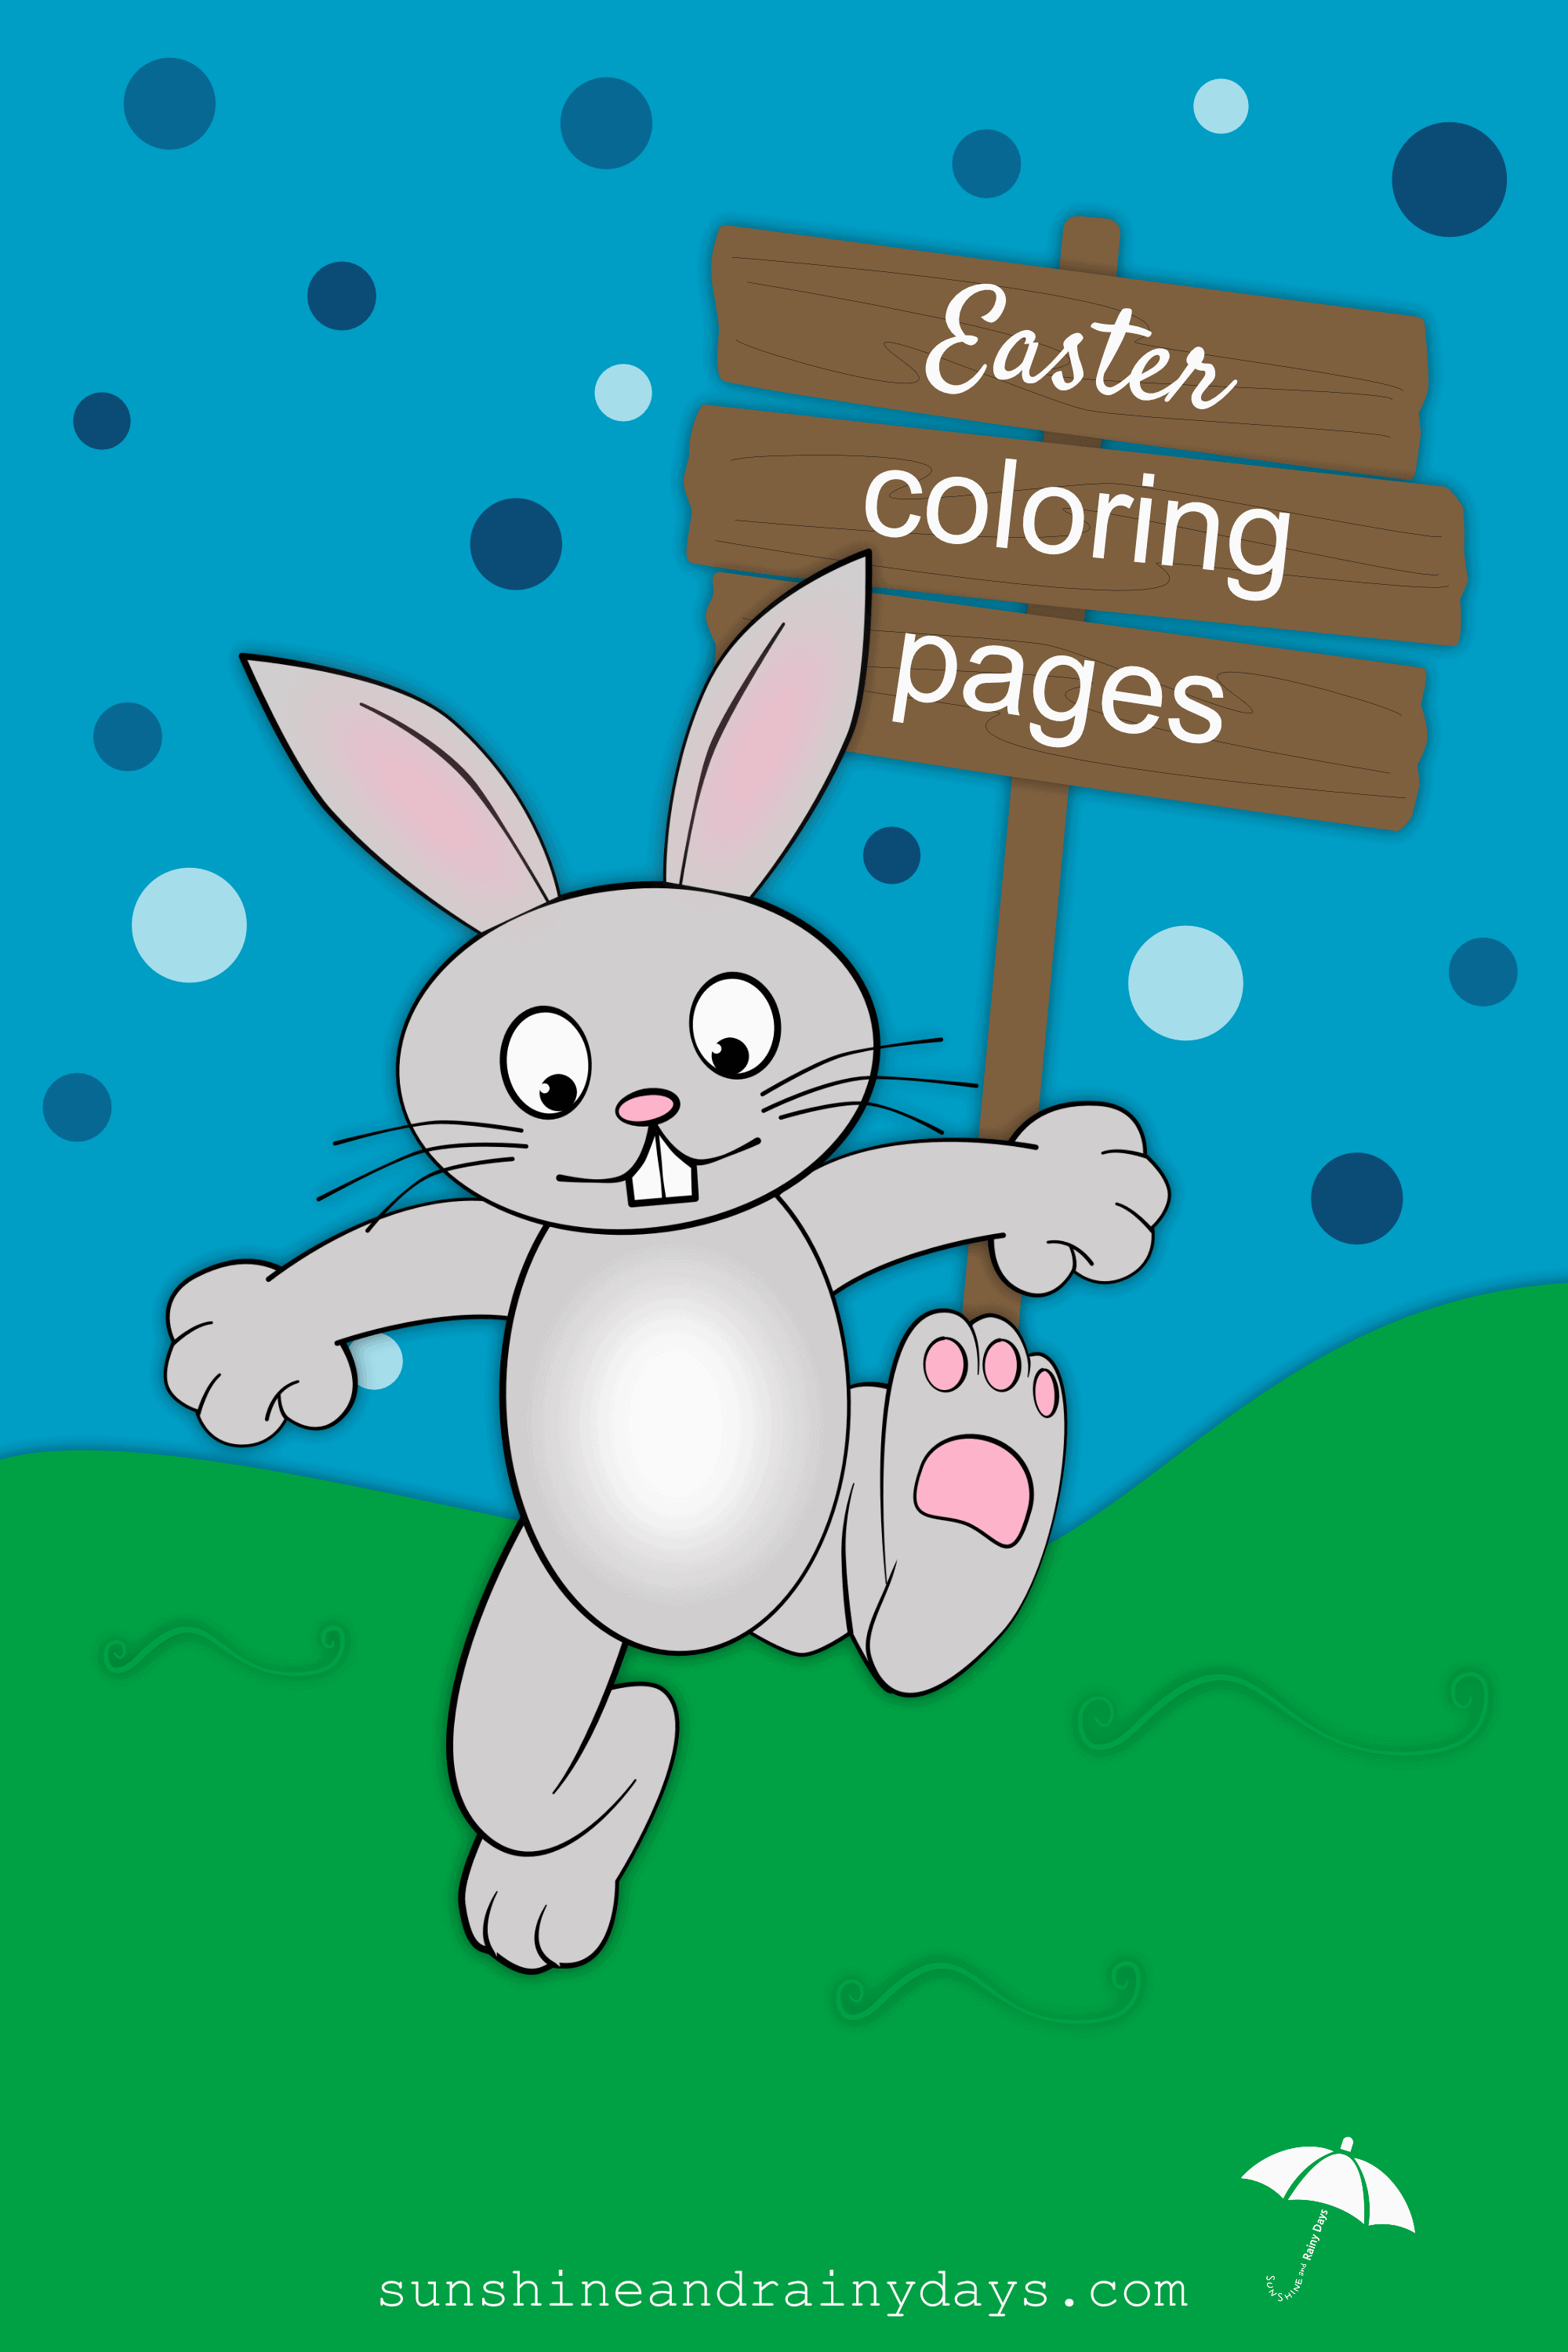 Leave a few Easter Coloring Pages laying around along with colored pencils and see if your guests start coloring! #EasterPrintables #EasterColoringPages #SARD #SunshineAndRainyDays